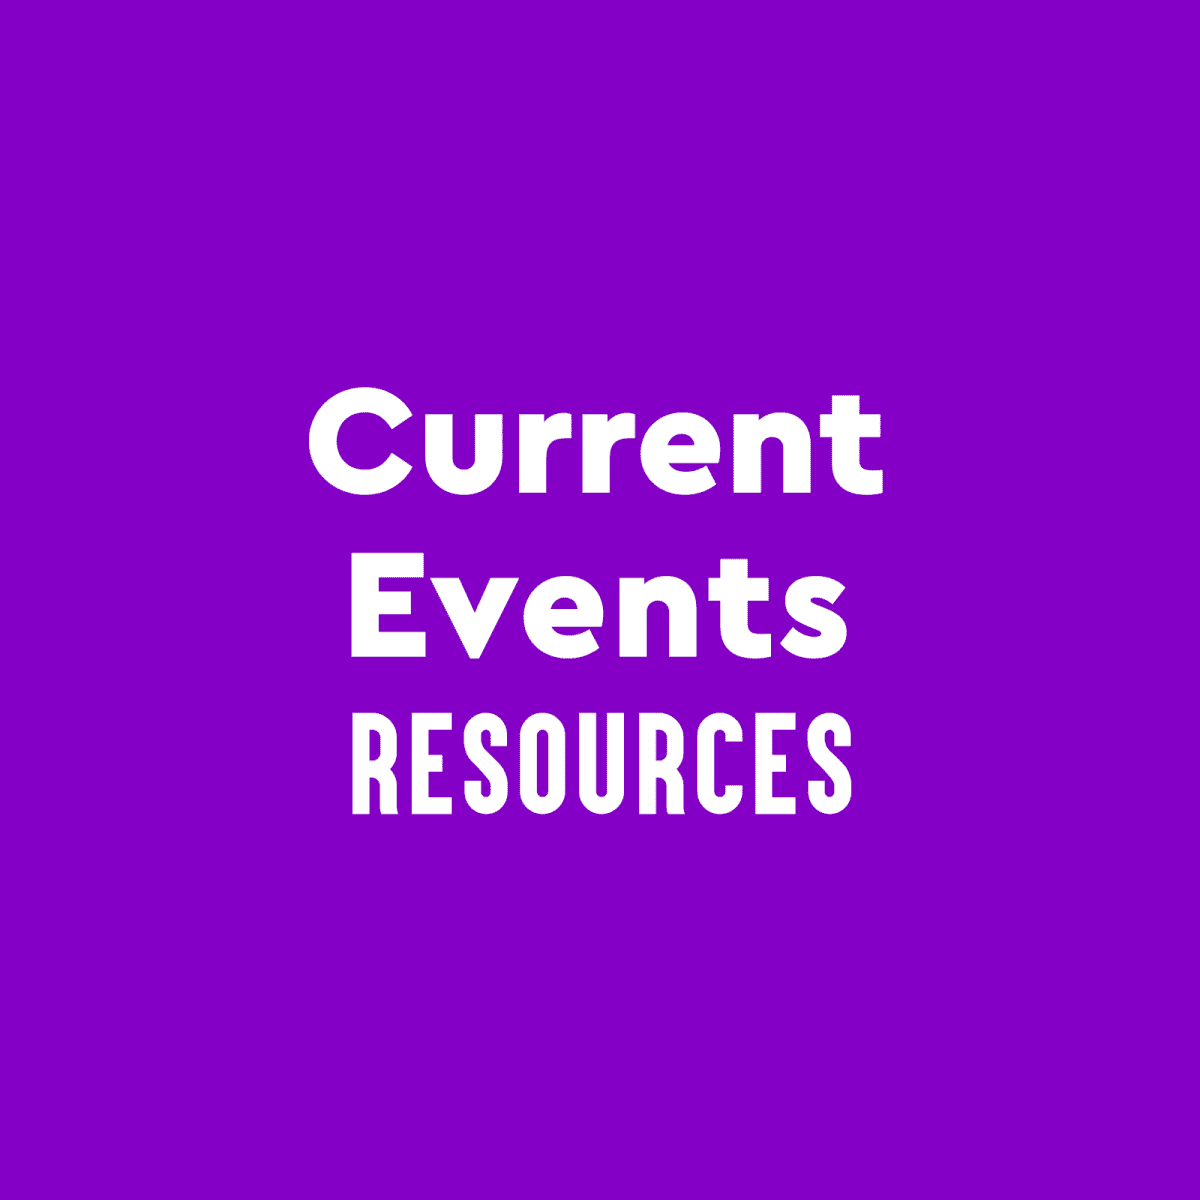 Image representing Current Events Resources